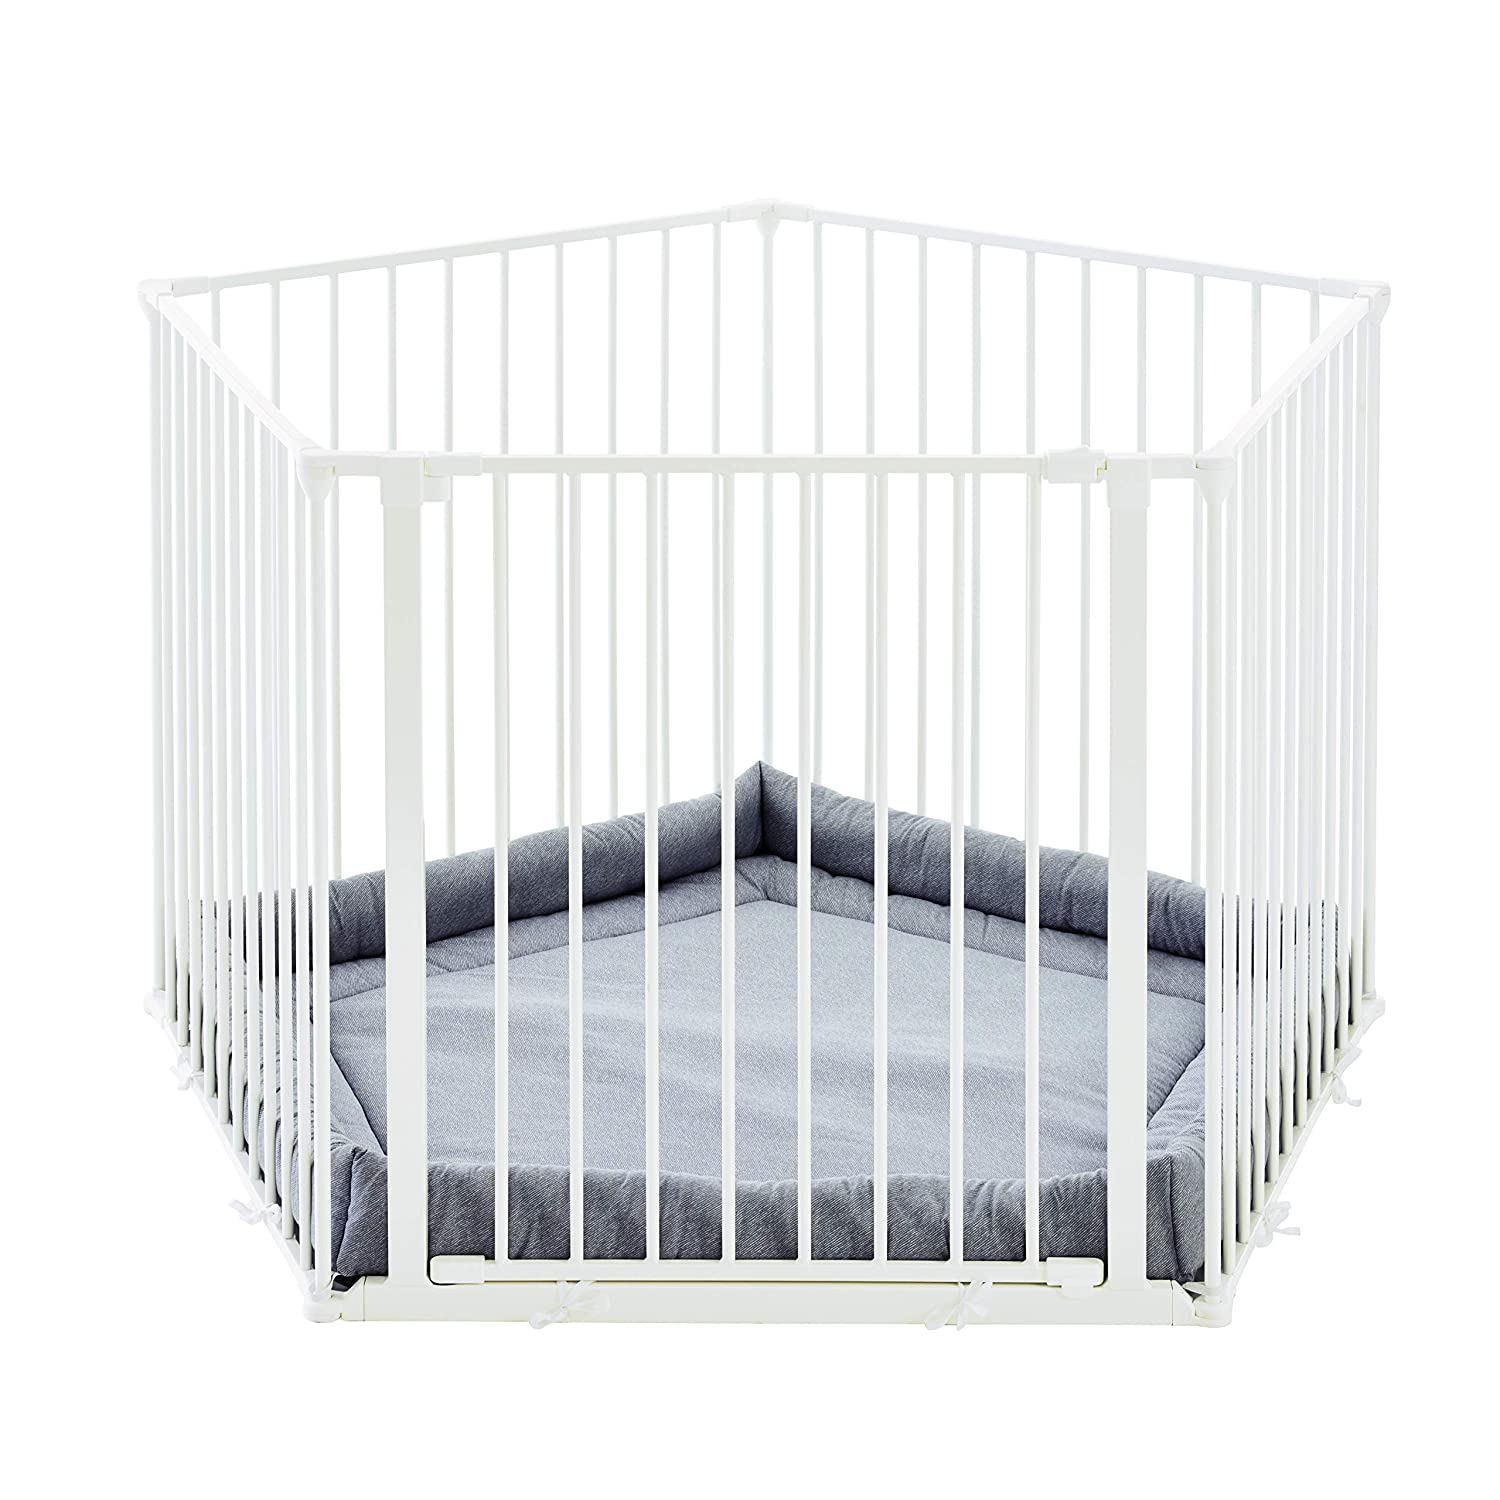 white Babydan Baby Playpen And Playmat Bright And Translucent In Appearance